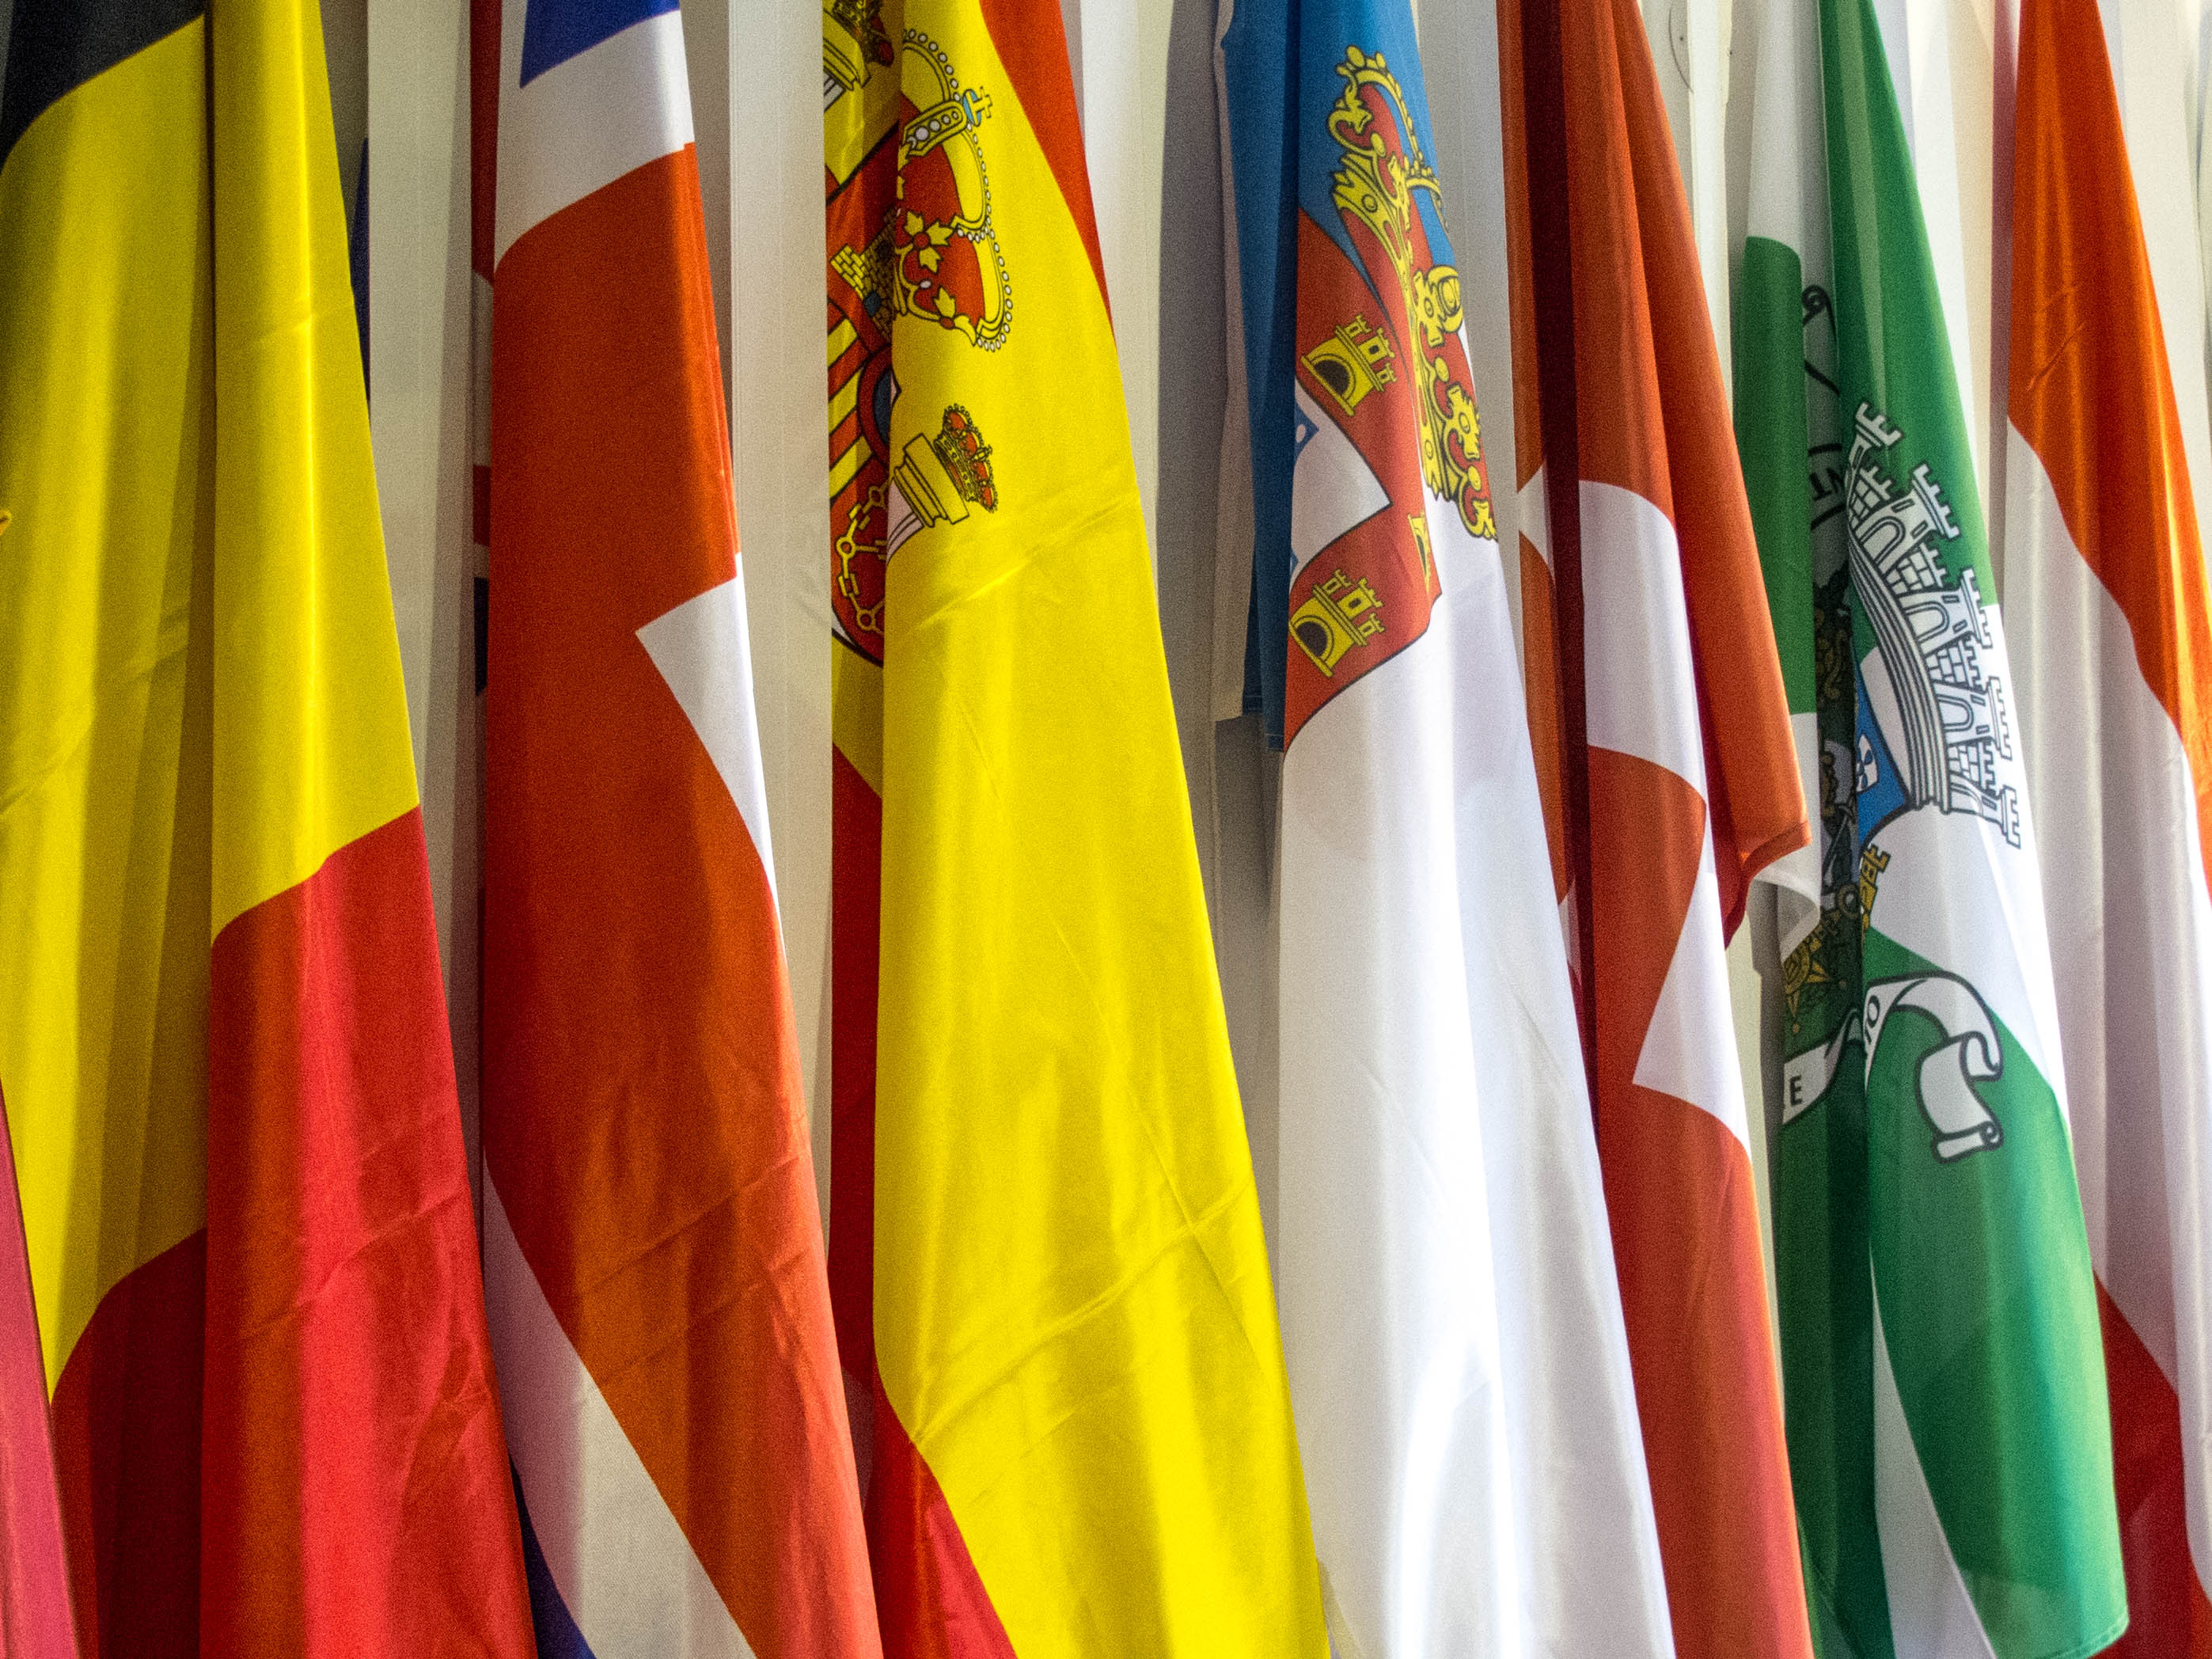 Flags from Belgium, United Kingdom, Spain, Portuguese Monarchy Switzerland and Porto